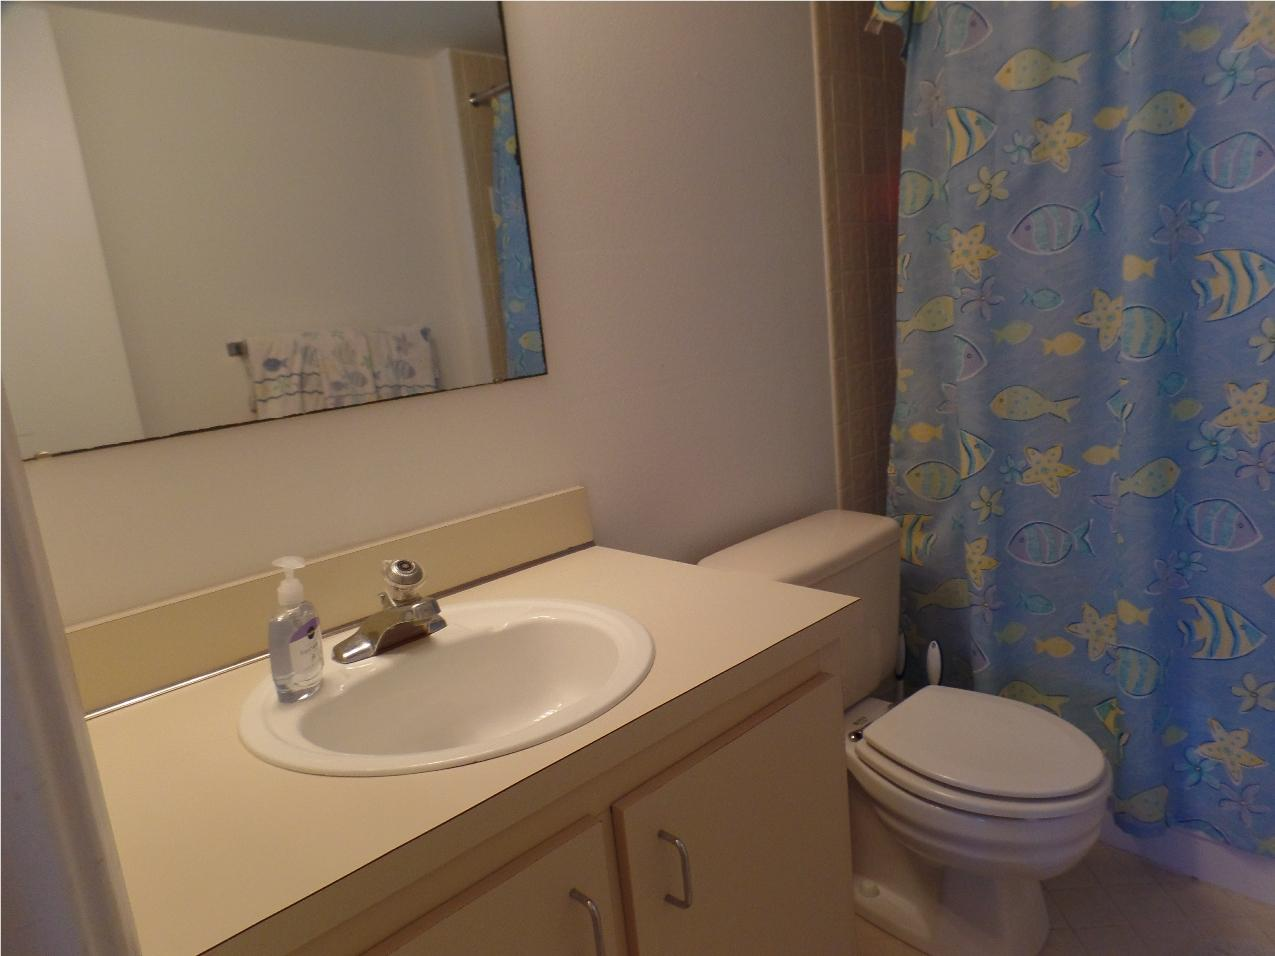 355 Ocean Drive, Fort Pierce, Florida 34949, 2 Bedrooms Bedrooms, ,2.1 BathroomsBathrooms,Condo/Coop,For Sale,Ocean,1,RX-10415059